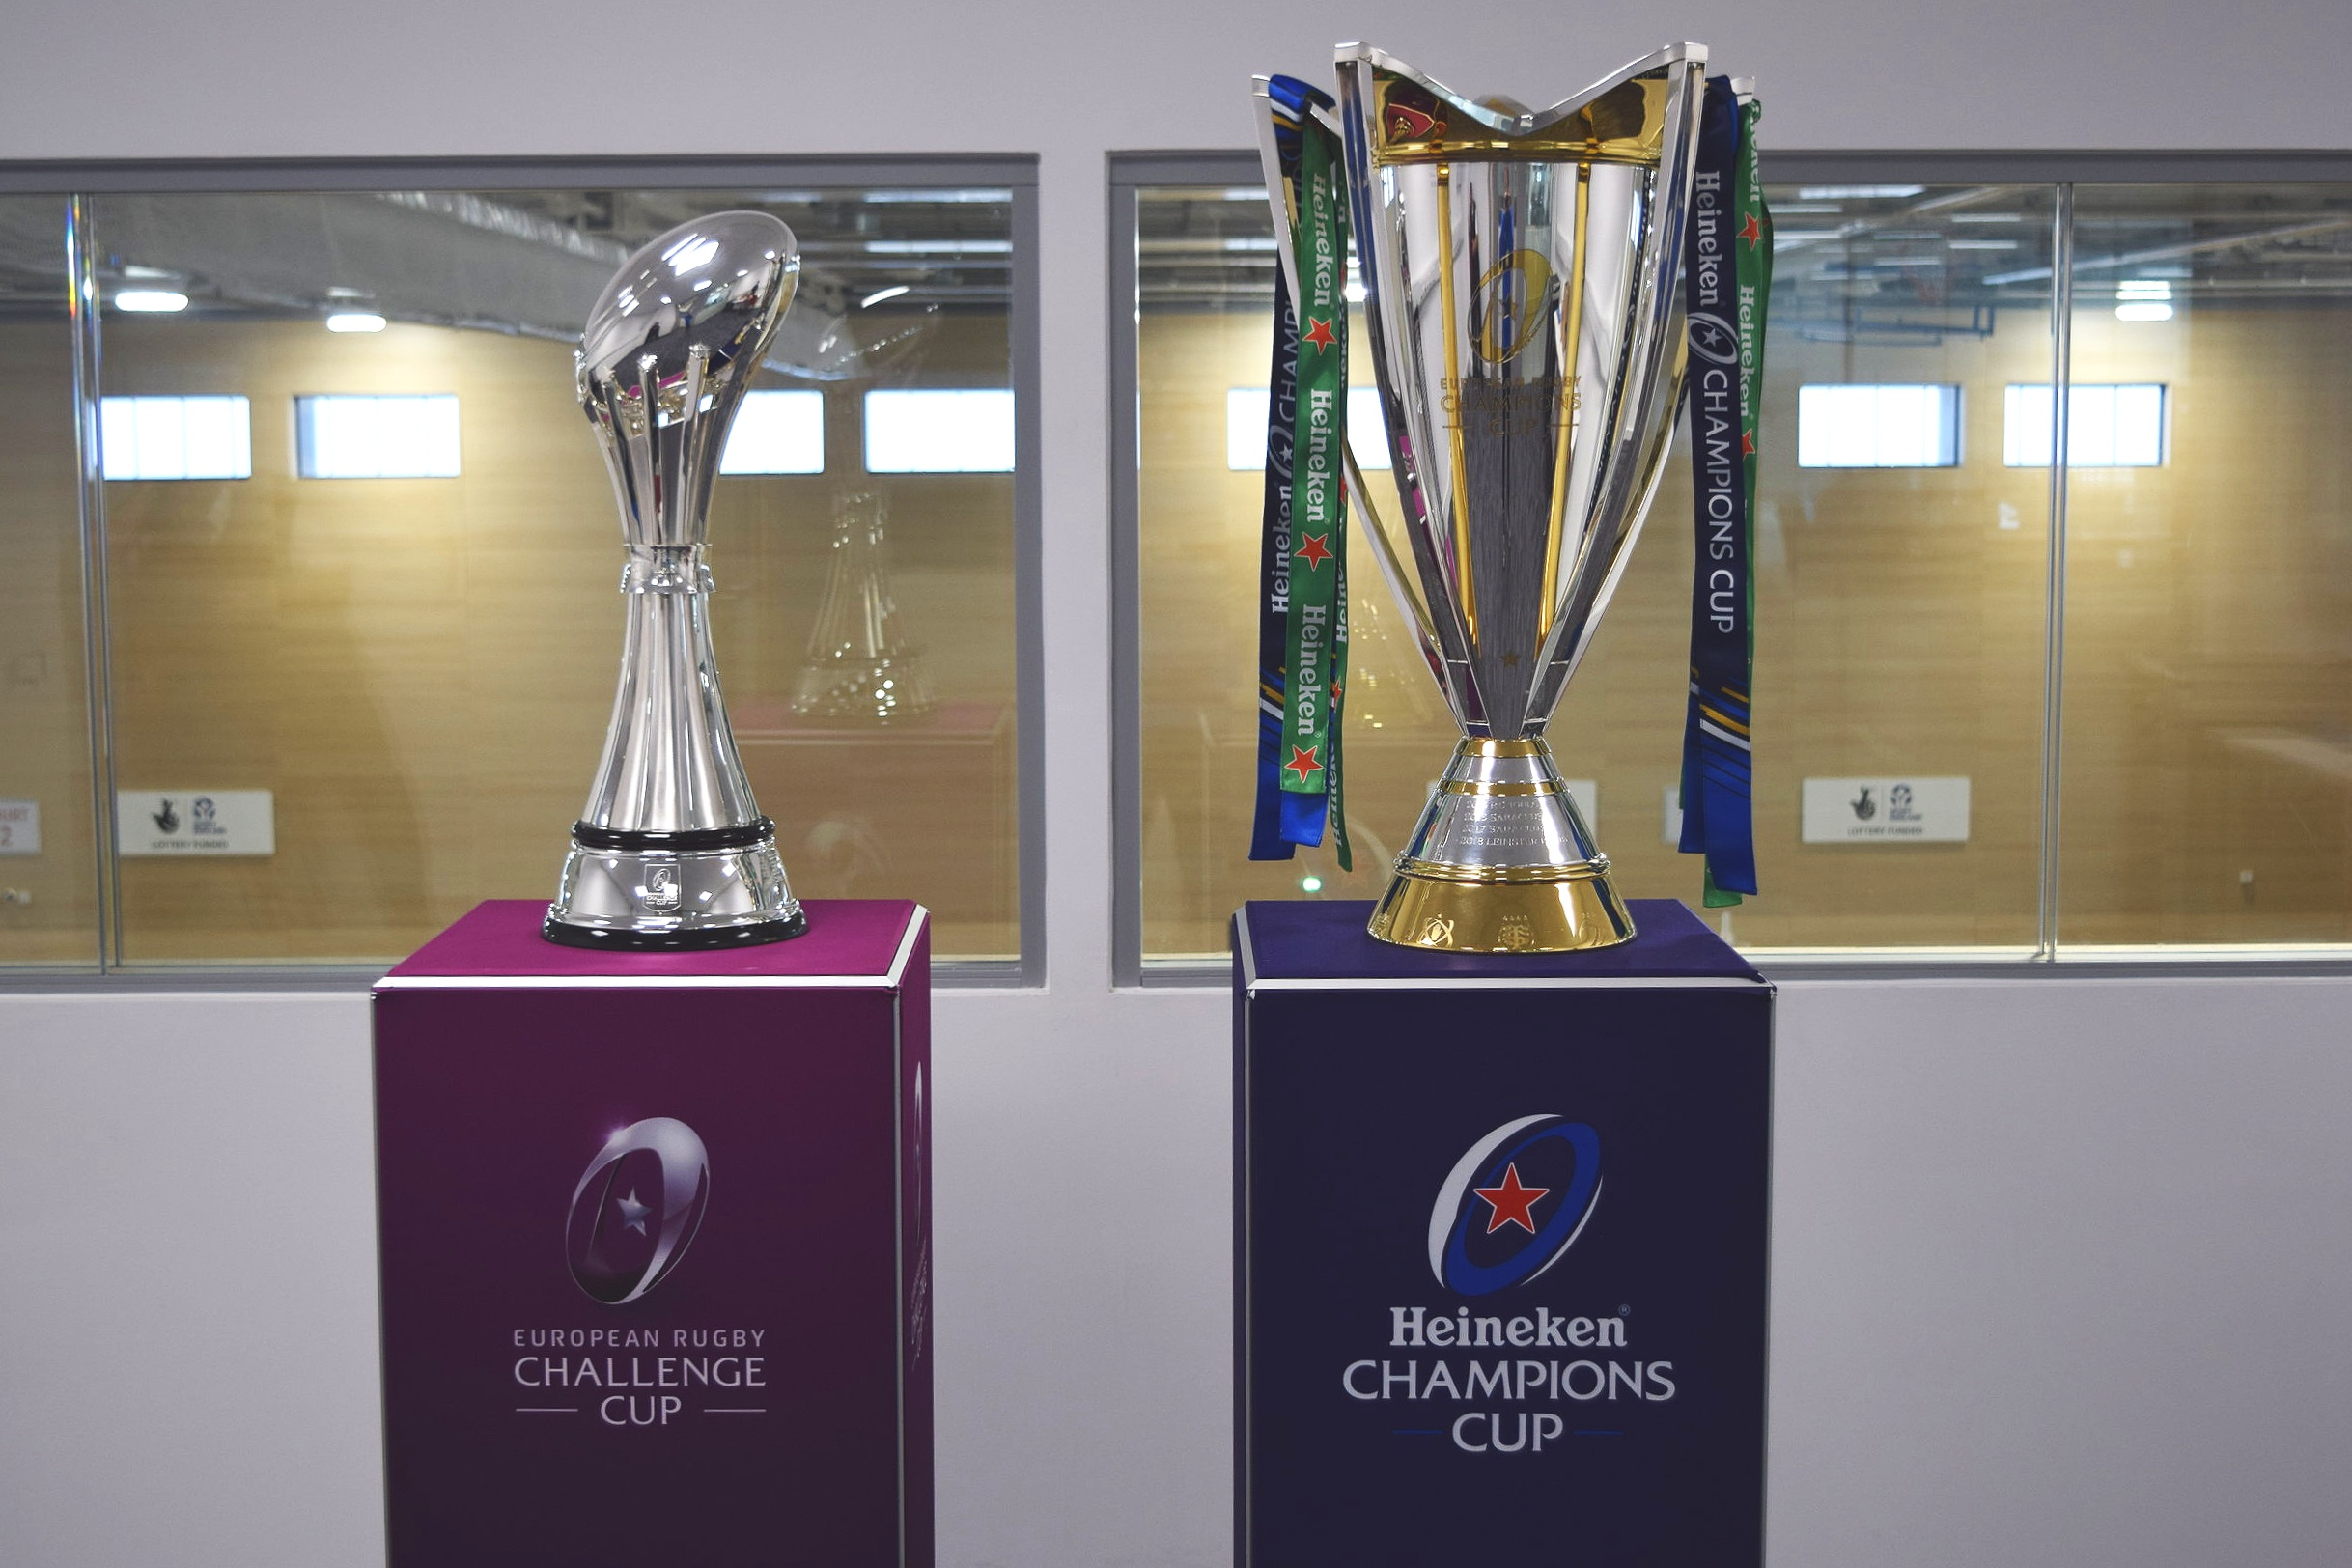 European Rugby Challenge Cup & Heineken Champions Cup. Beacon of Light, Sunderland, 28 March 2019